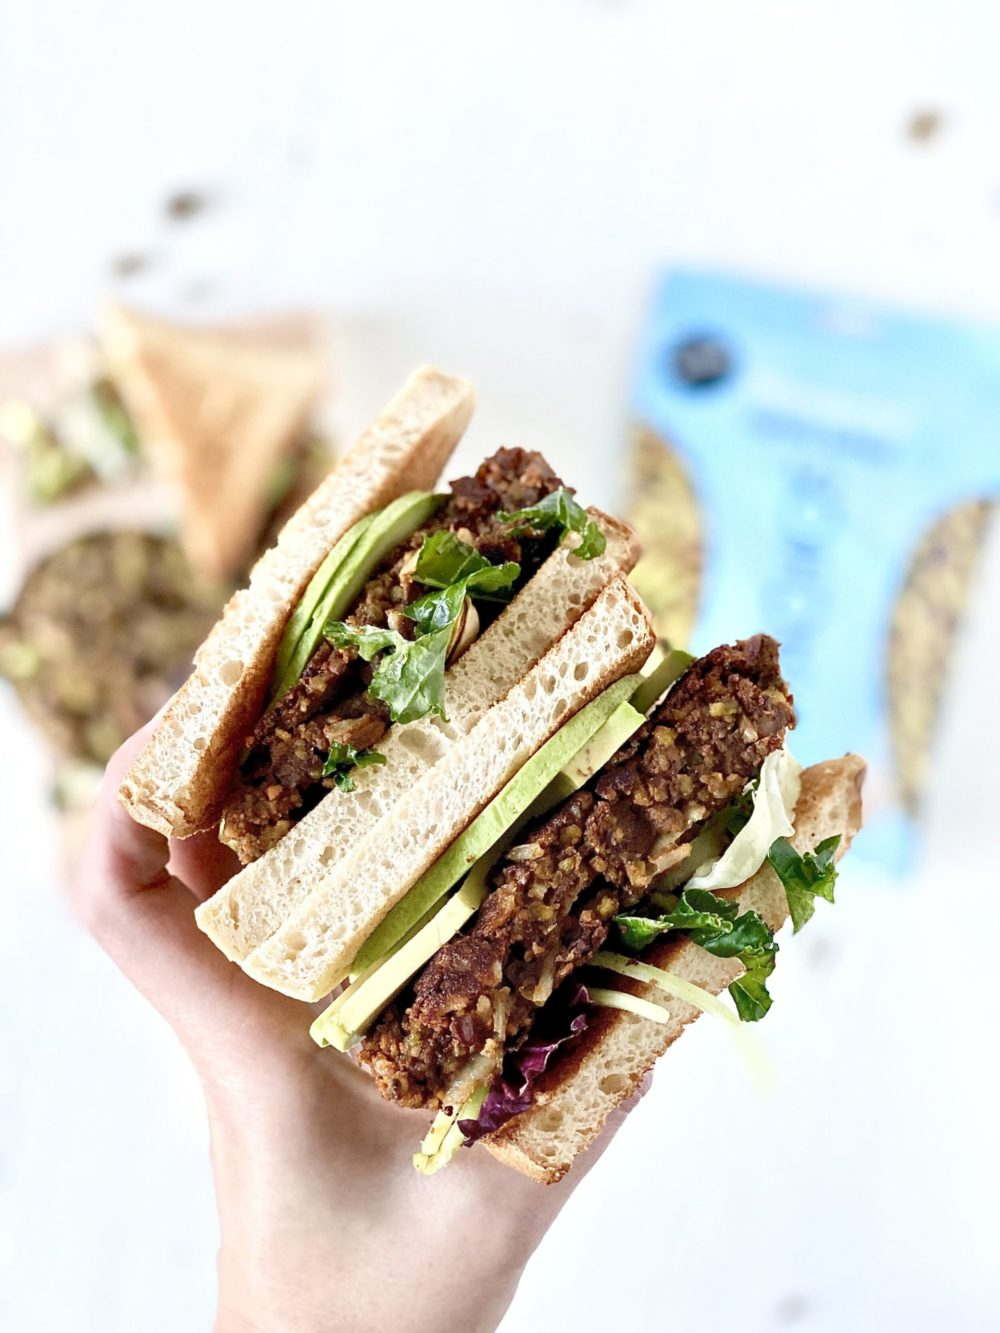 Caramelized onion and pistachio veggie burgers